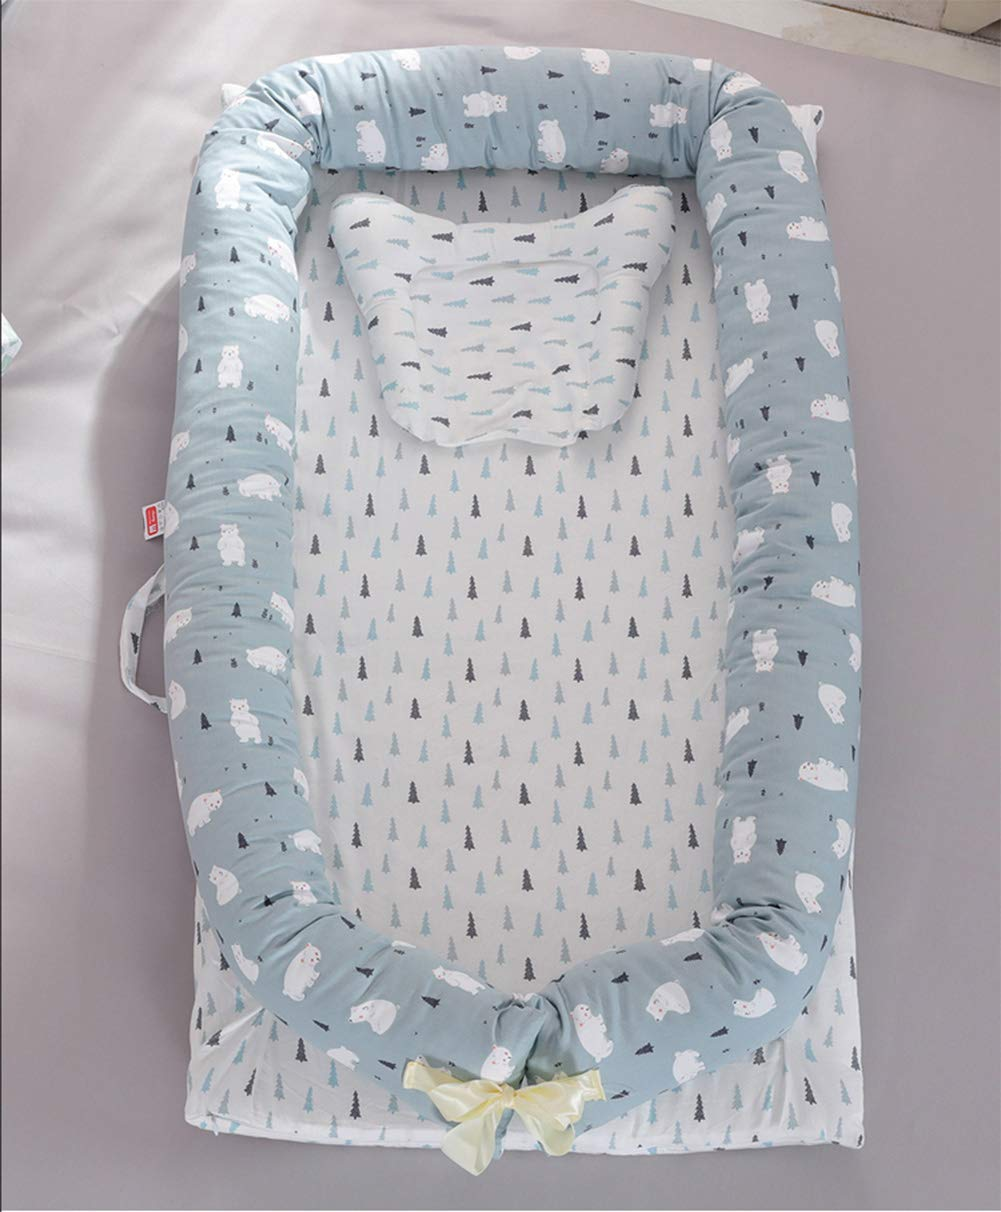 LNDD-Multifunctional Sleeping Nest Pods Baby Lounger Washable Bionic Uterine Bumpers Travel Cradle Mattresses Suitable for 0-3 Years Old Baby,Blue by LNDD